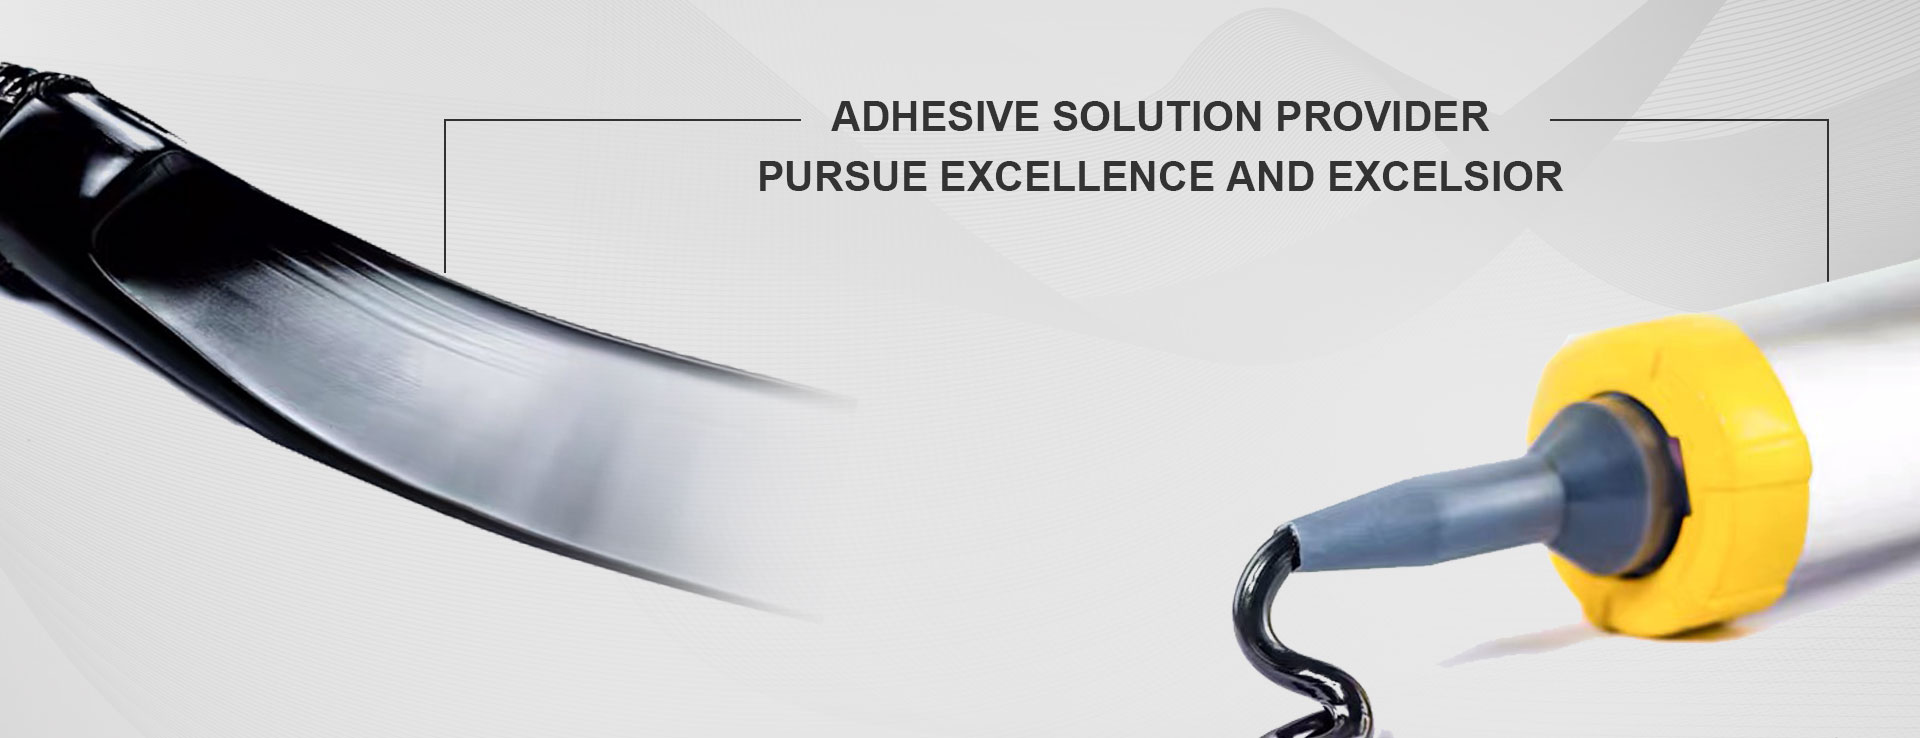 Adhesive Solution Provider Pursue Excellence and Excelsior